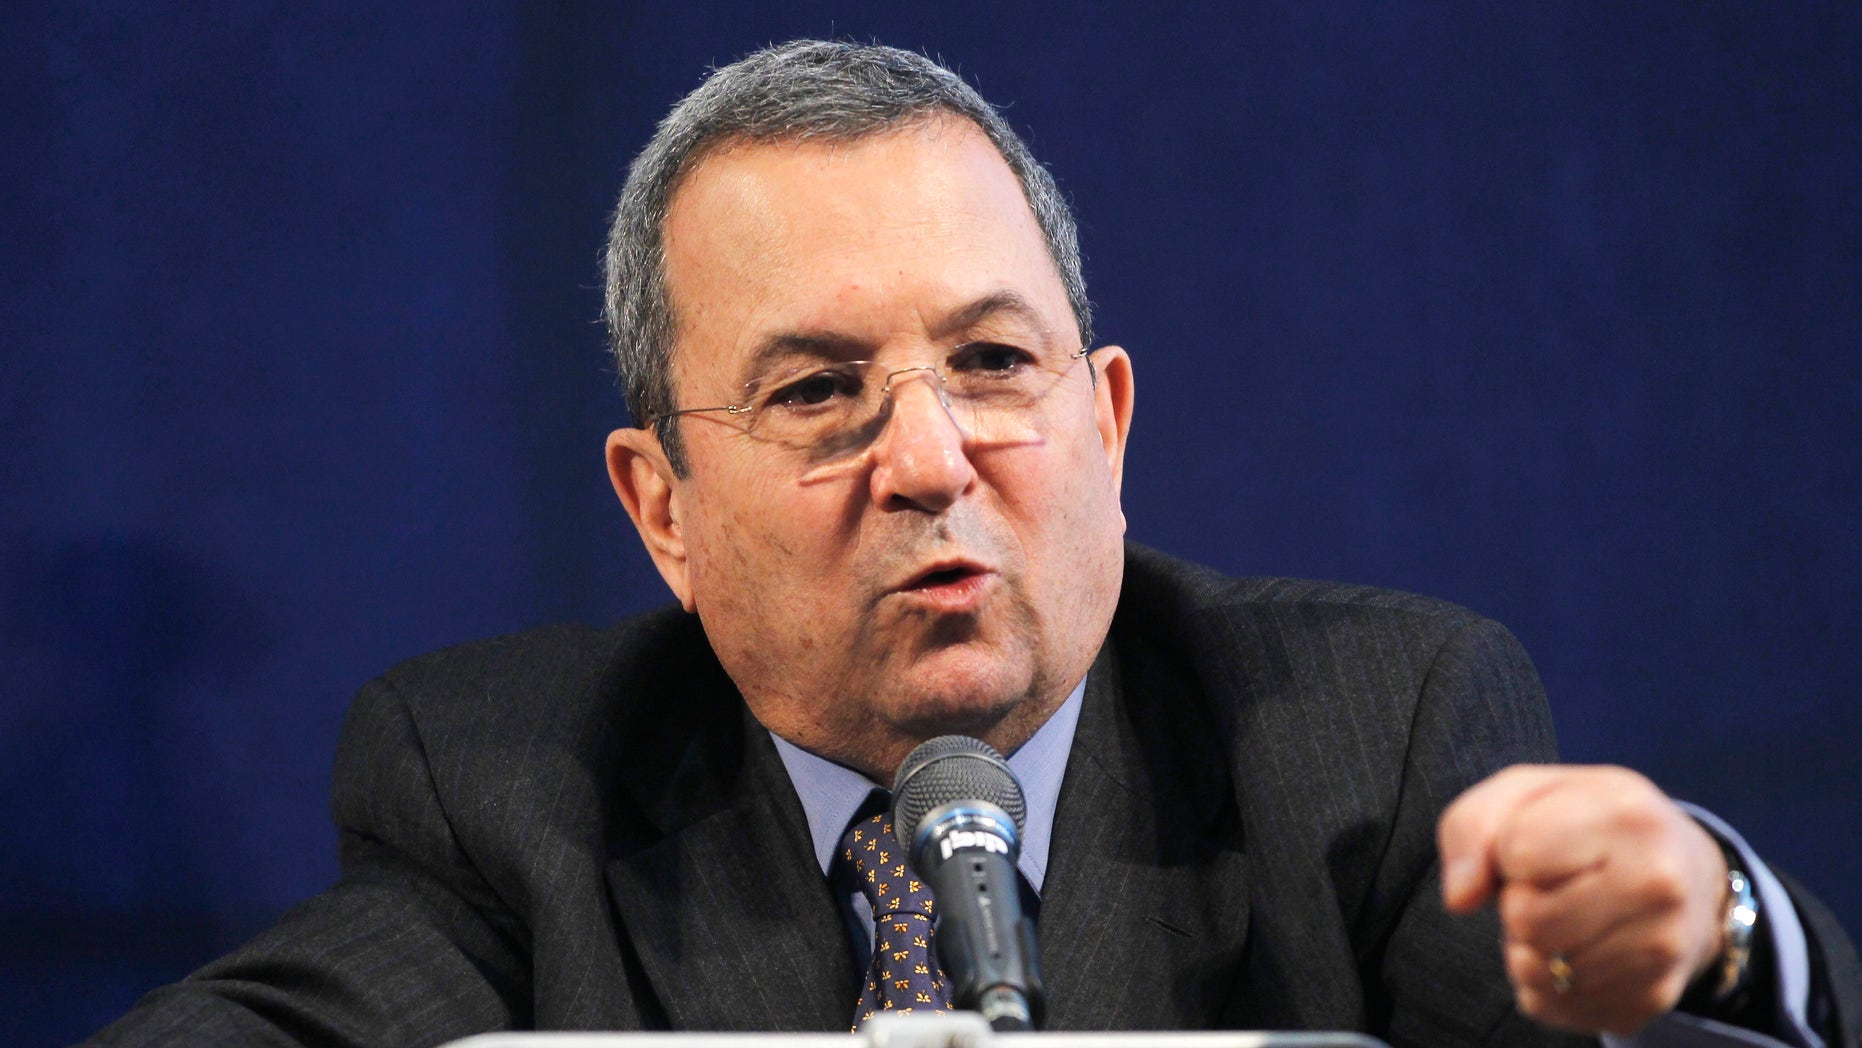 Israel's Defense Minister Ehud Barak answers a question during a joint news conference with Defense Secretary Robert Gates, not pictured, in Tel Aviv, Israel, Thursday, March 24, 2011. (AP)